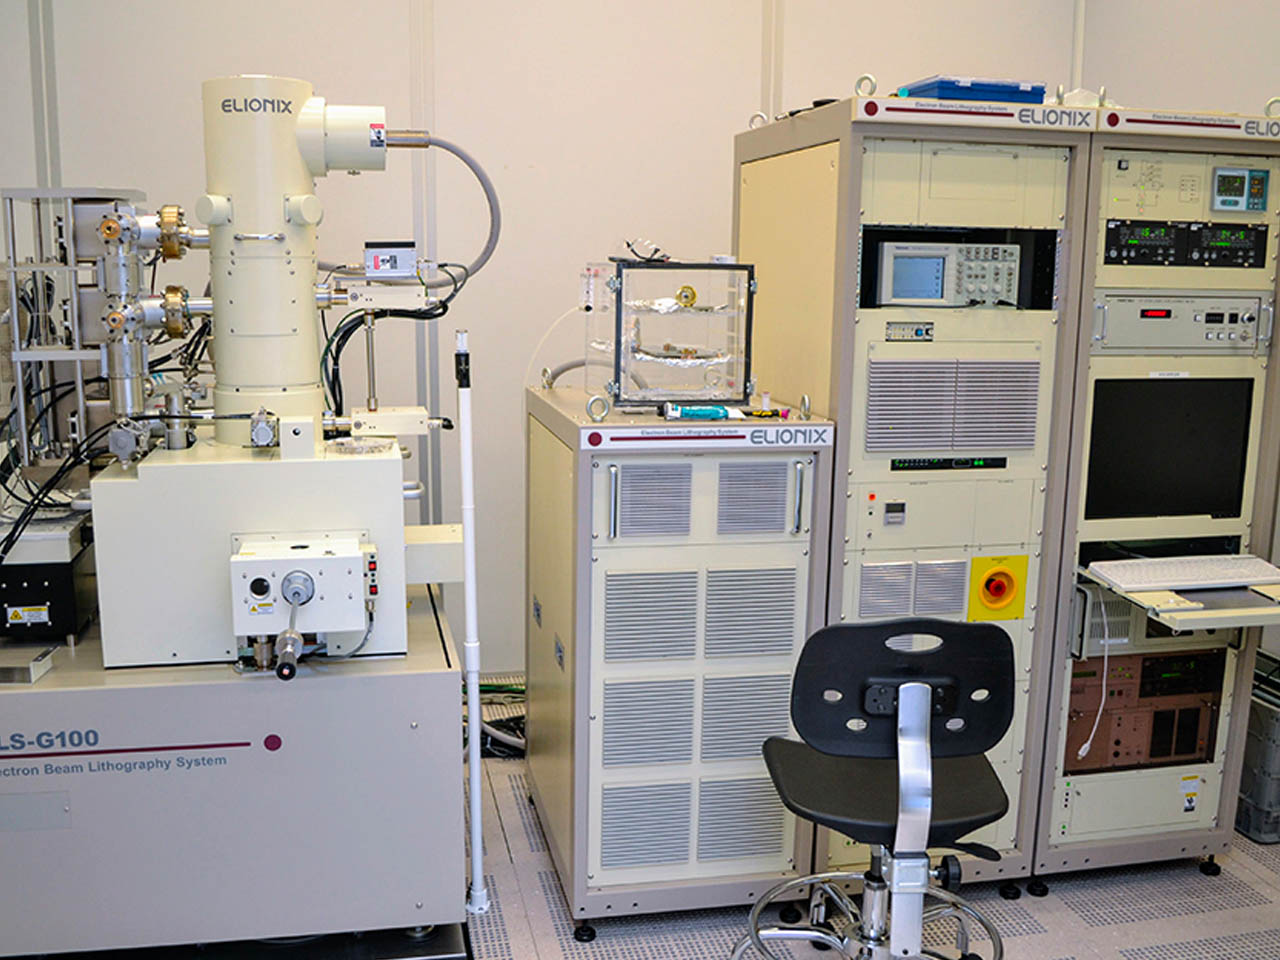 How Does Electron Beam Lithography System Work?